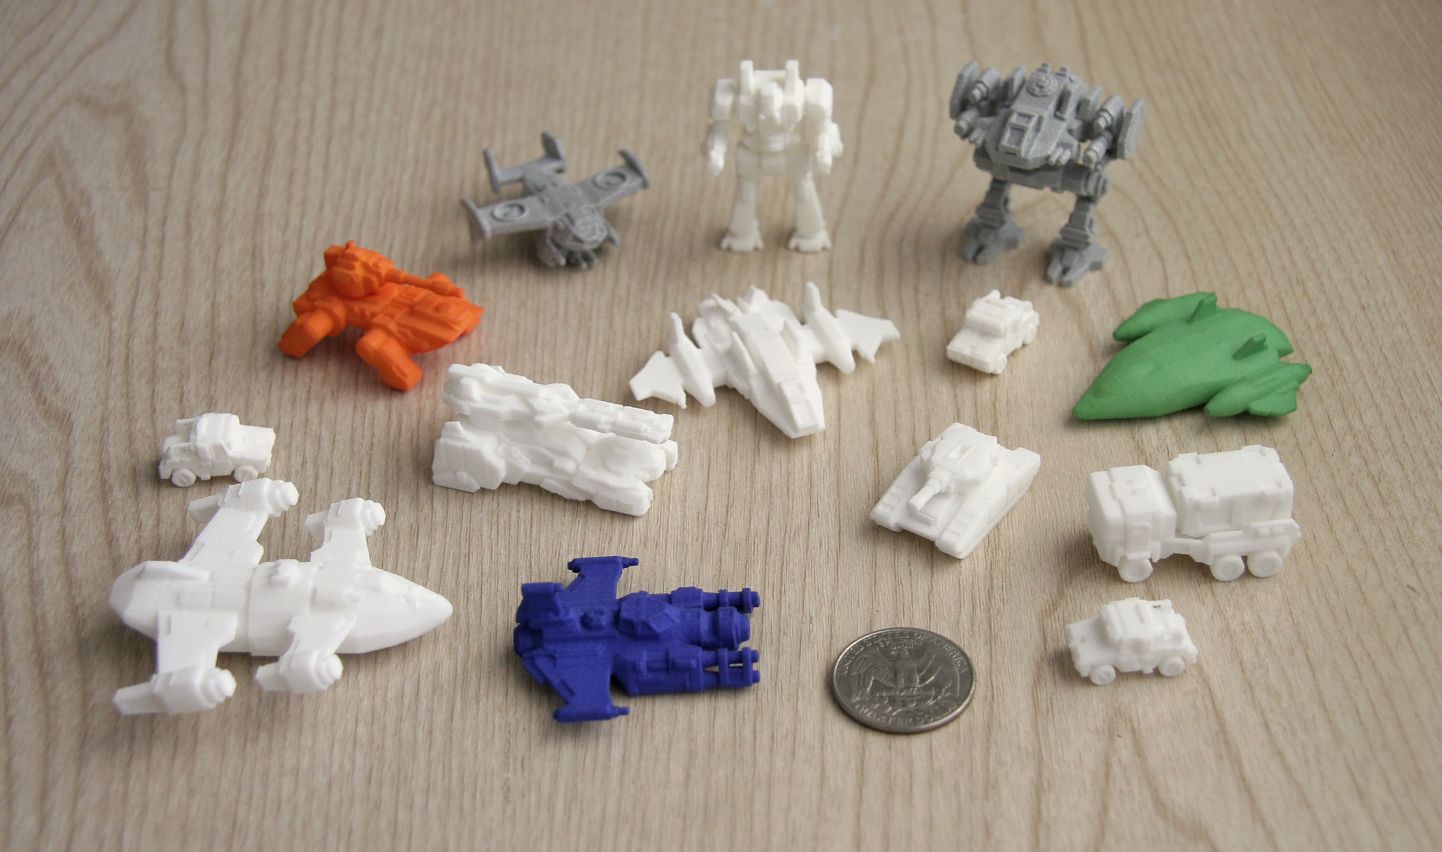 3d Printed Miniatures Collection From Shapeways By